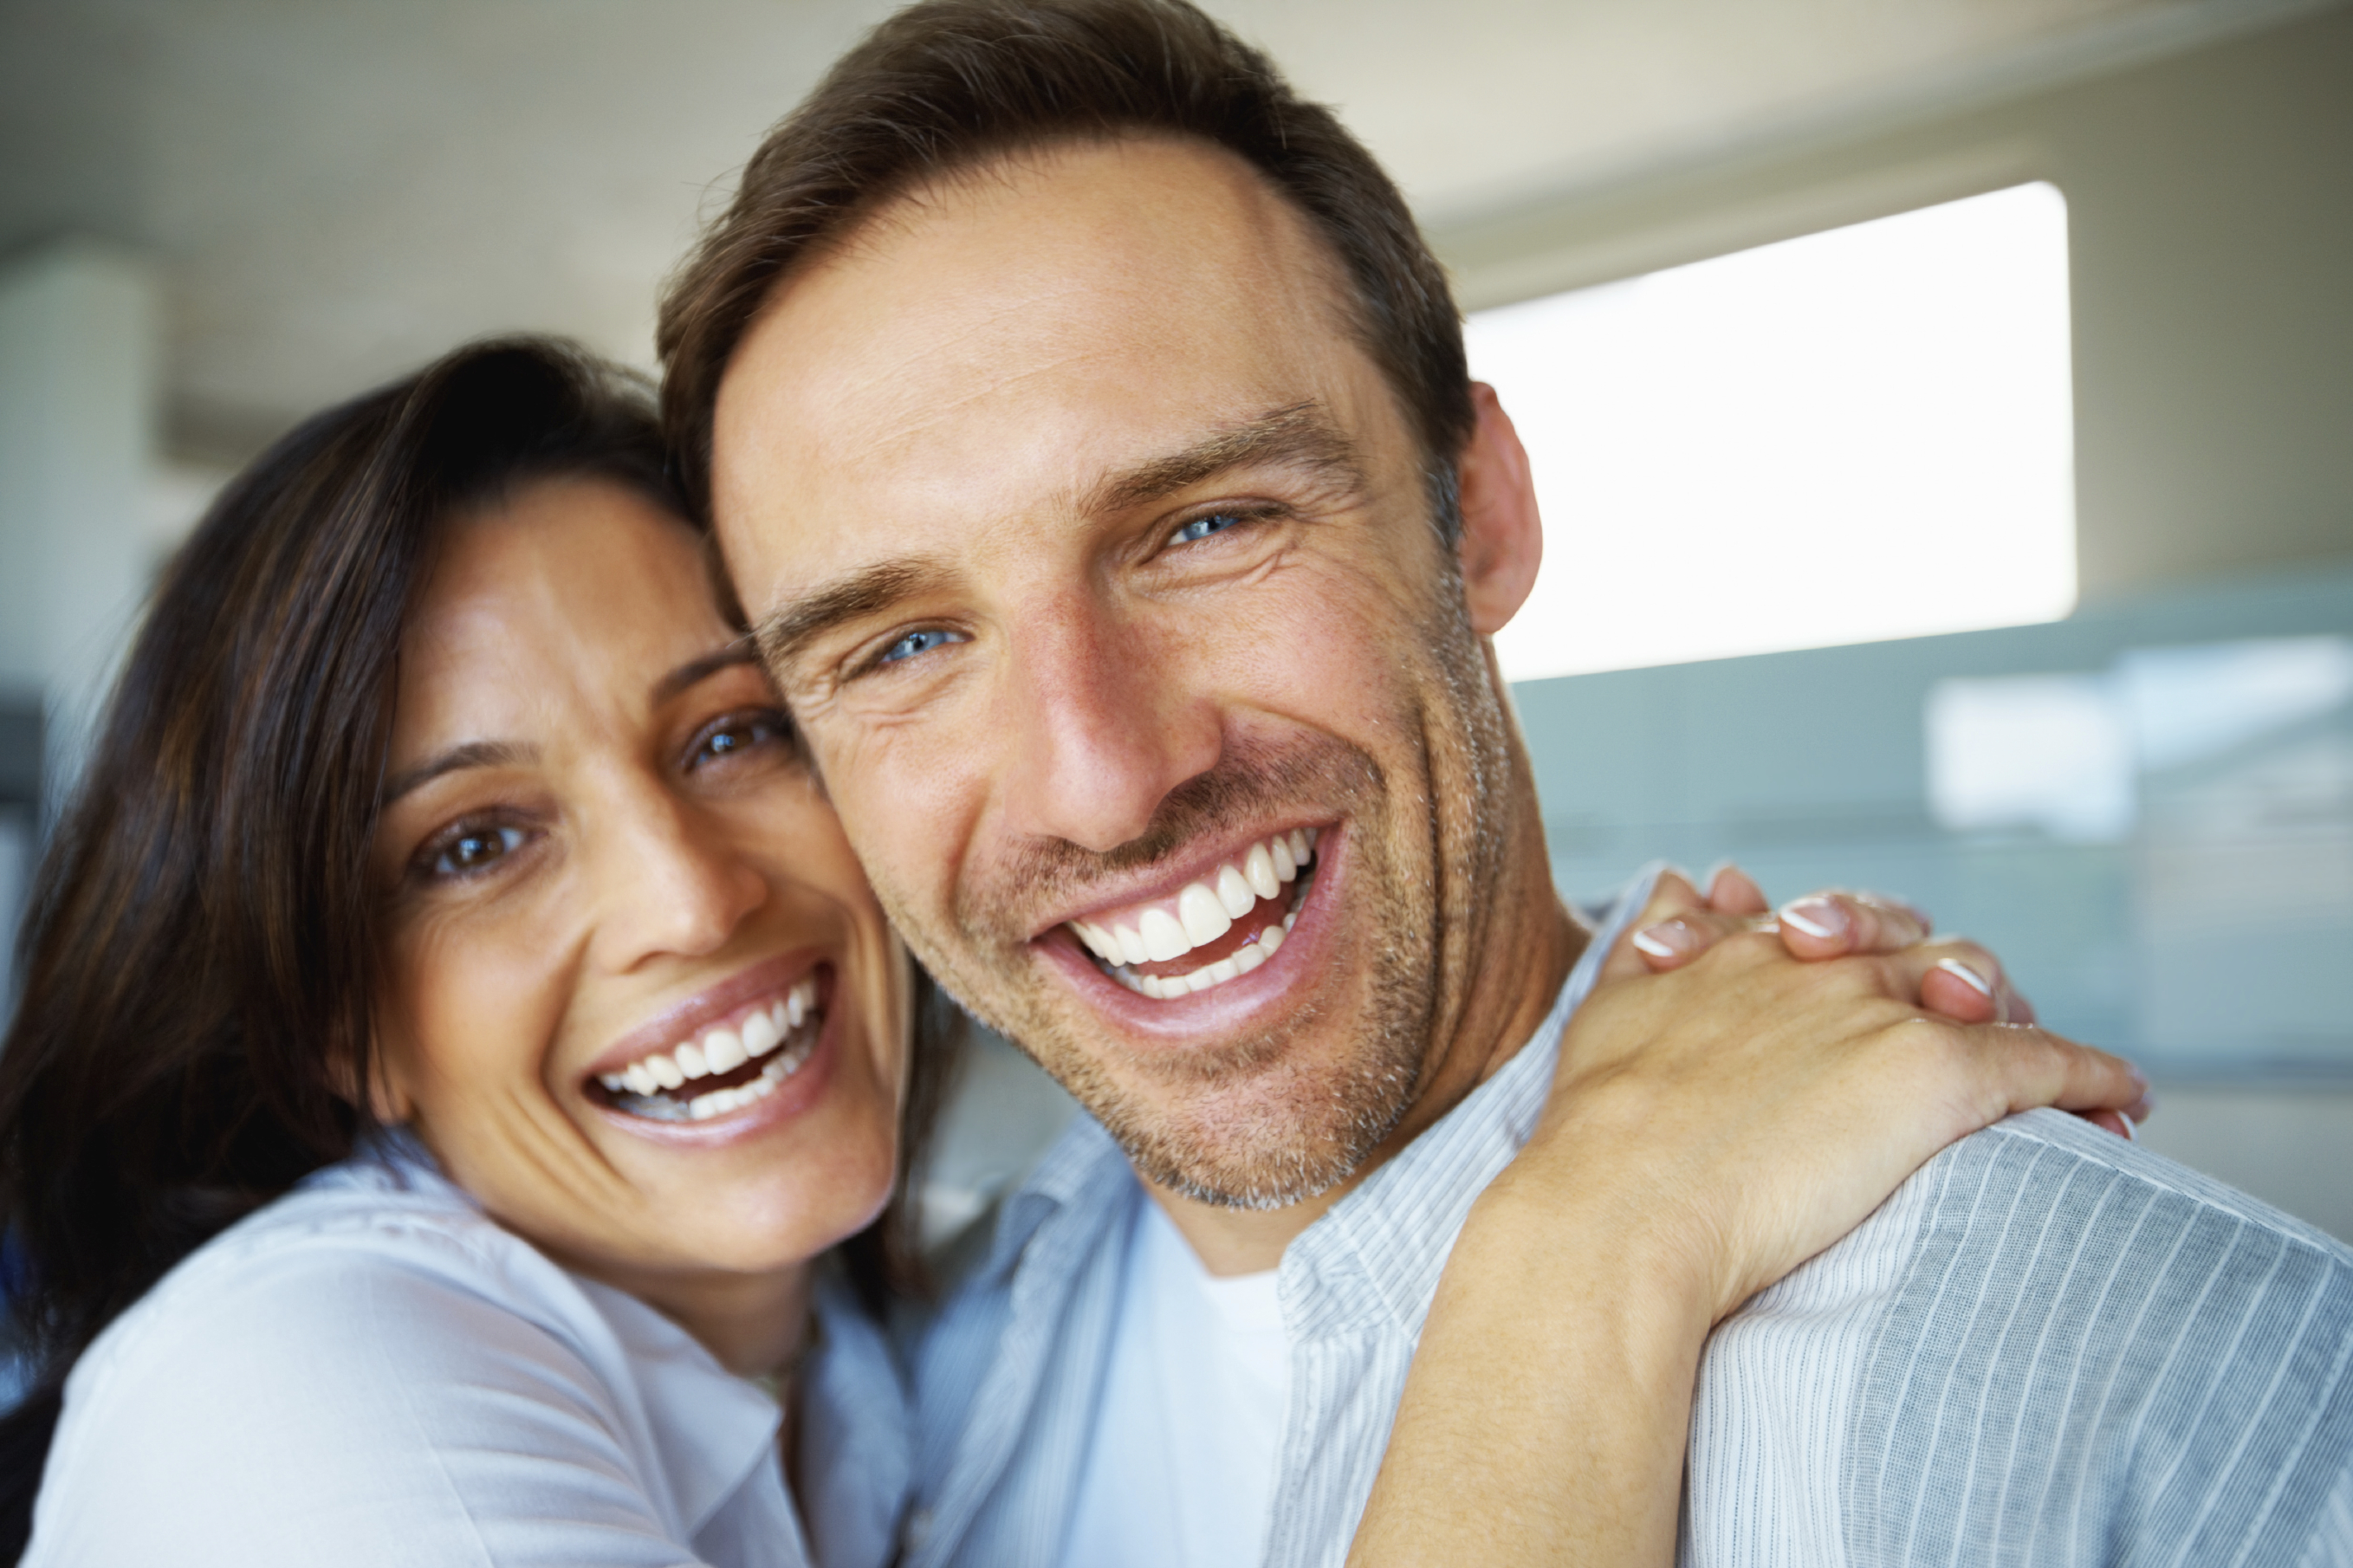 featured image for dental health tips for adults